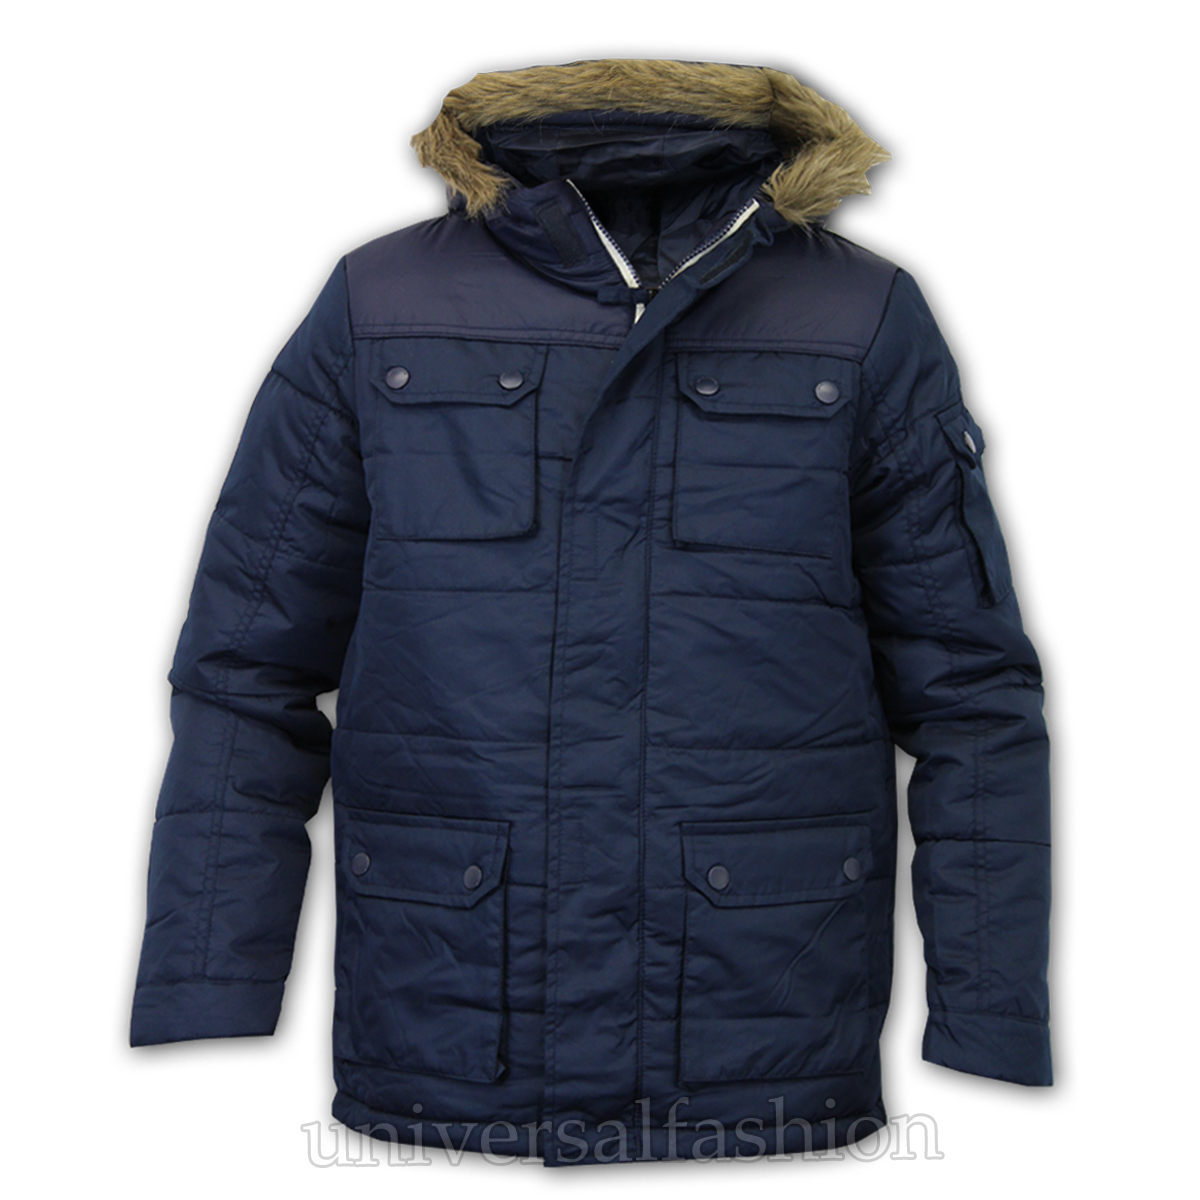 Shop Boys' Coats at JCPeneny. Shopping for boys' coats is easy at JCPenney. We always carry a wide collection of boys' jackets jackets for boys of all ages in in one place! With our assortment of coats for boys, you'll find the perfect jackets for every occassion.